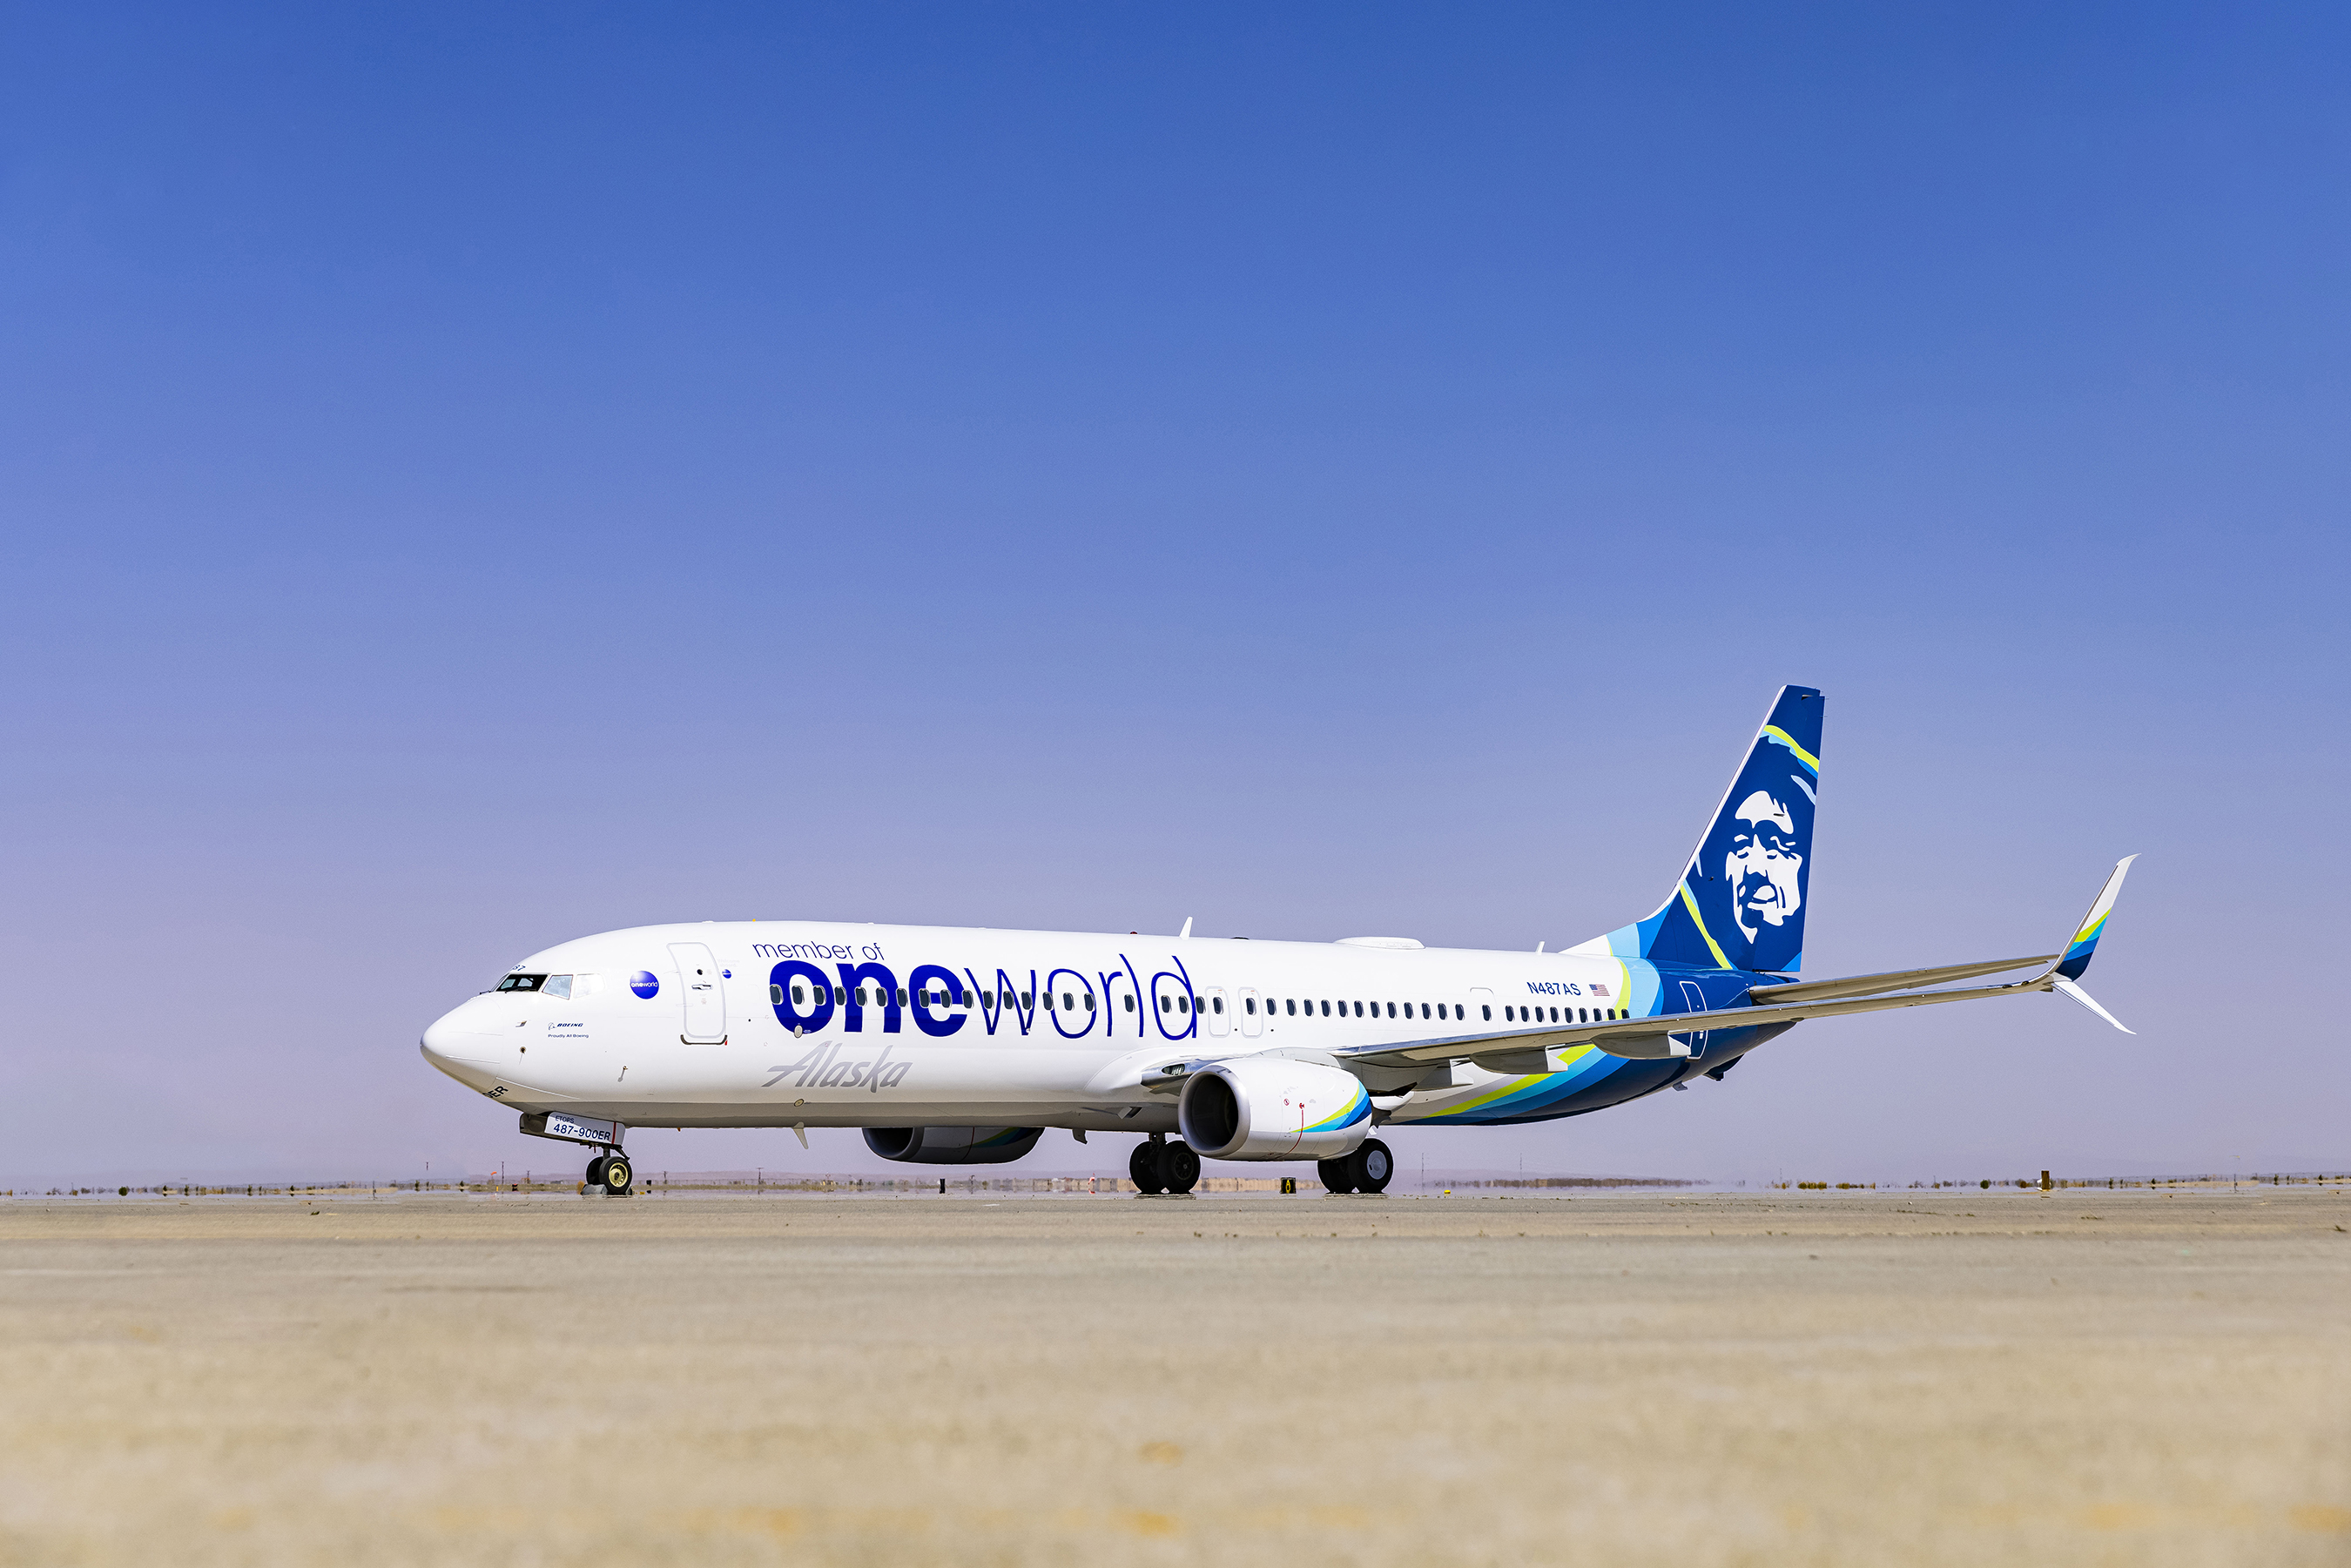 Alaska Airlines reveals its first of three special edition oneworld aircraft liveries in celebration of becoming the 14th member to join oneworld.